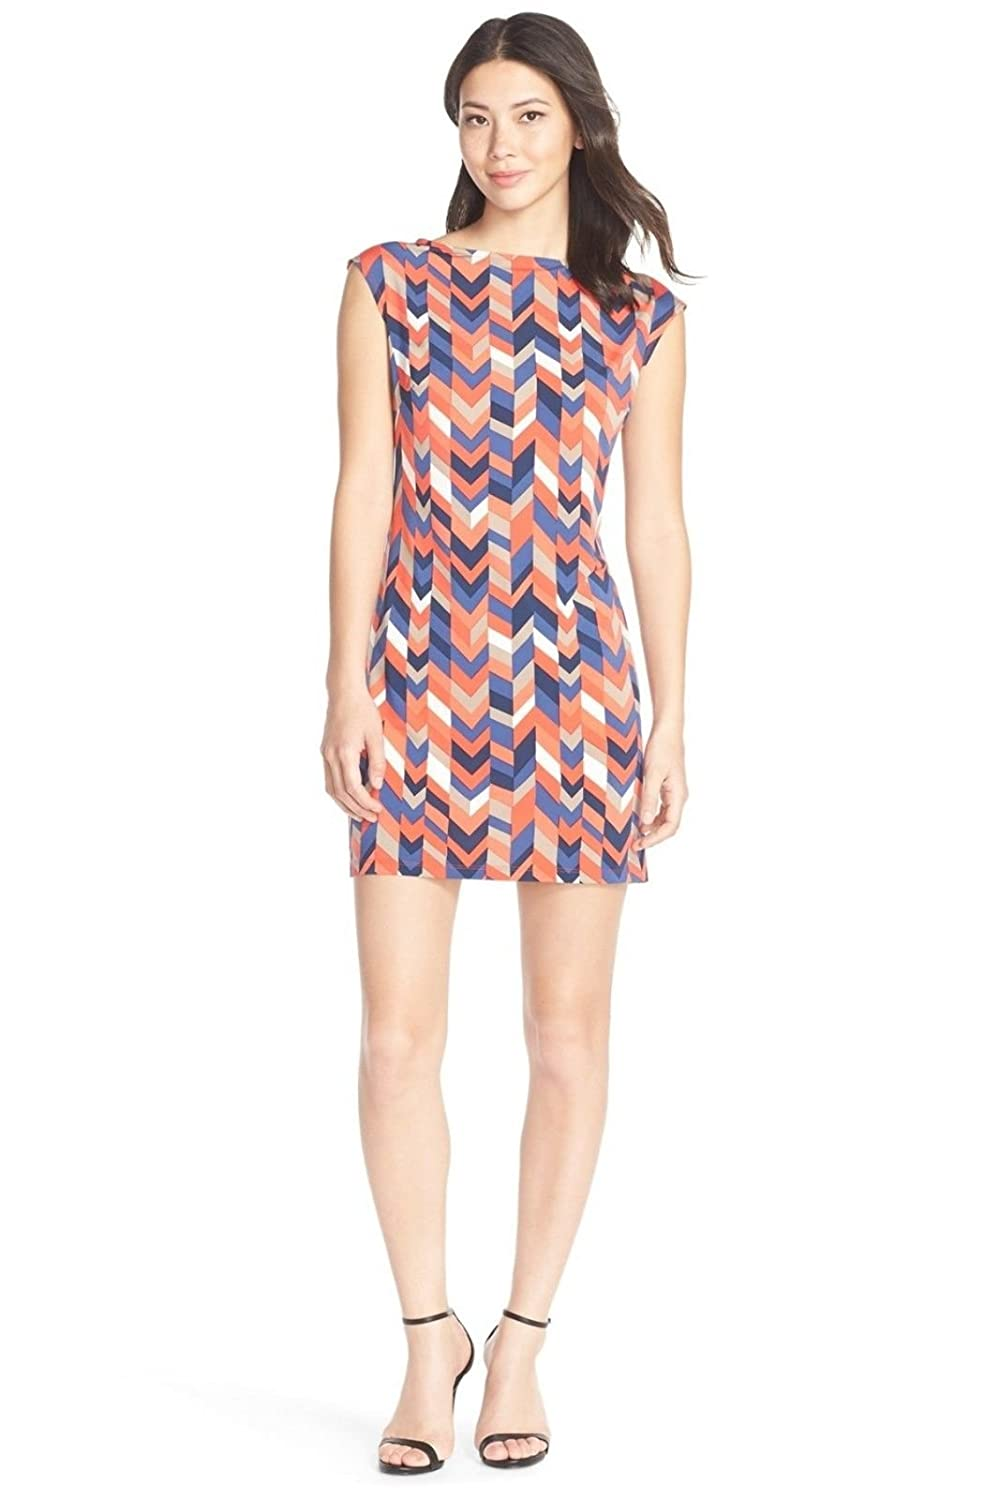 Trina Turk 'Felana' Printed Jersey Shift Dress, Orange/Blue